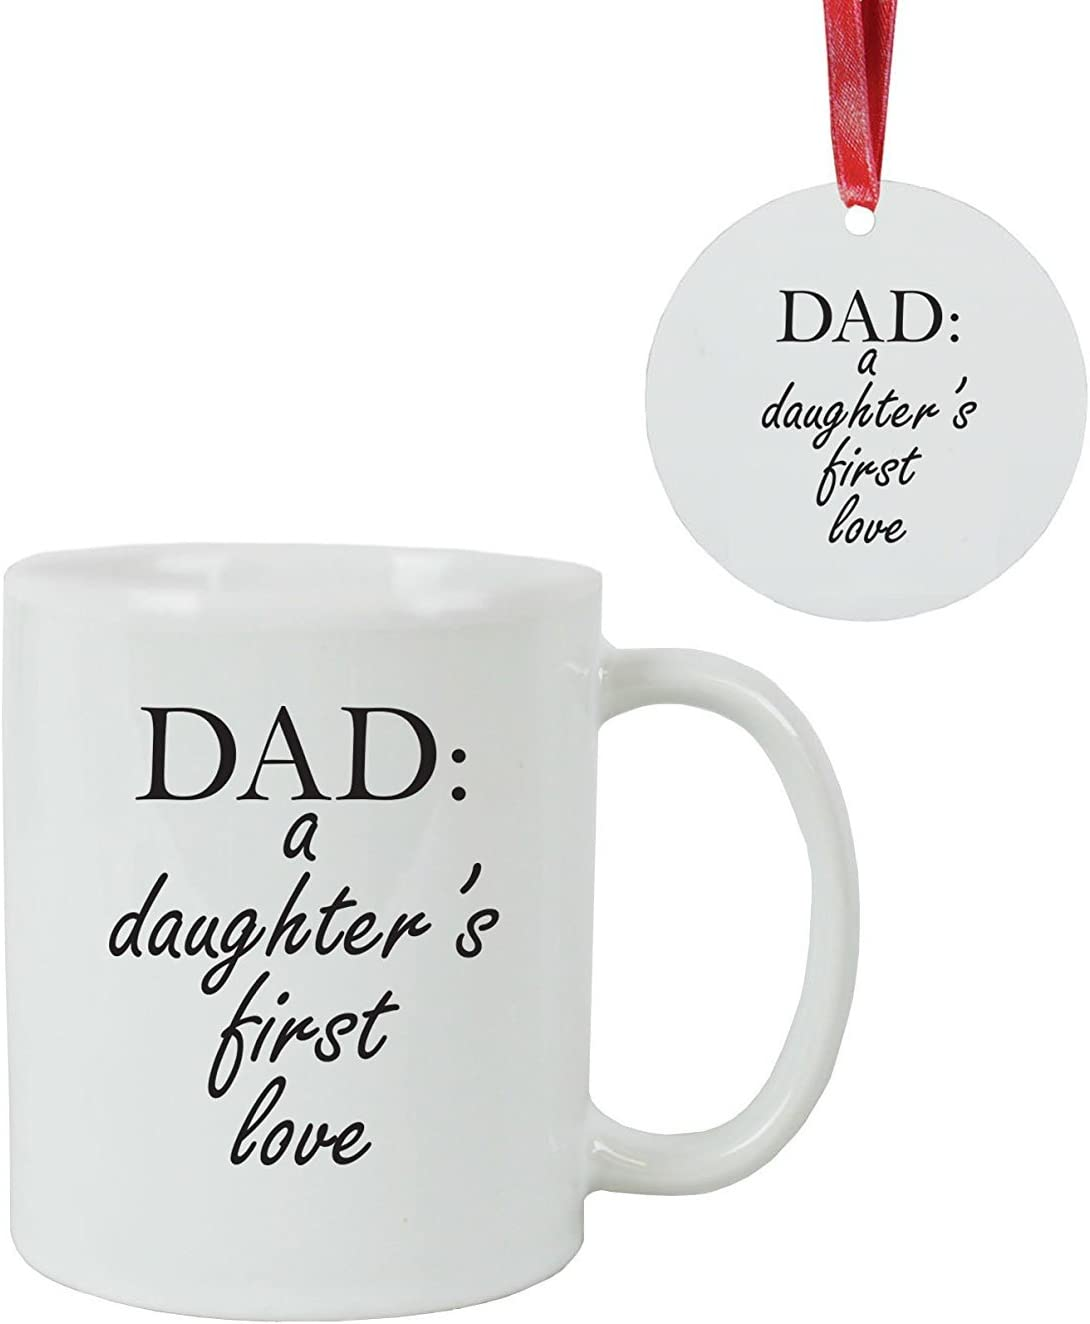 Amazon Com Dad A Daughter S First Love Coffee Mug With Christmas Ornament Gift Box Great Gift For Father S Day Birthday Or Christmas Gift For Dad Grandpa Papa Husband Home Kitchen